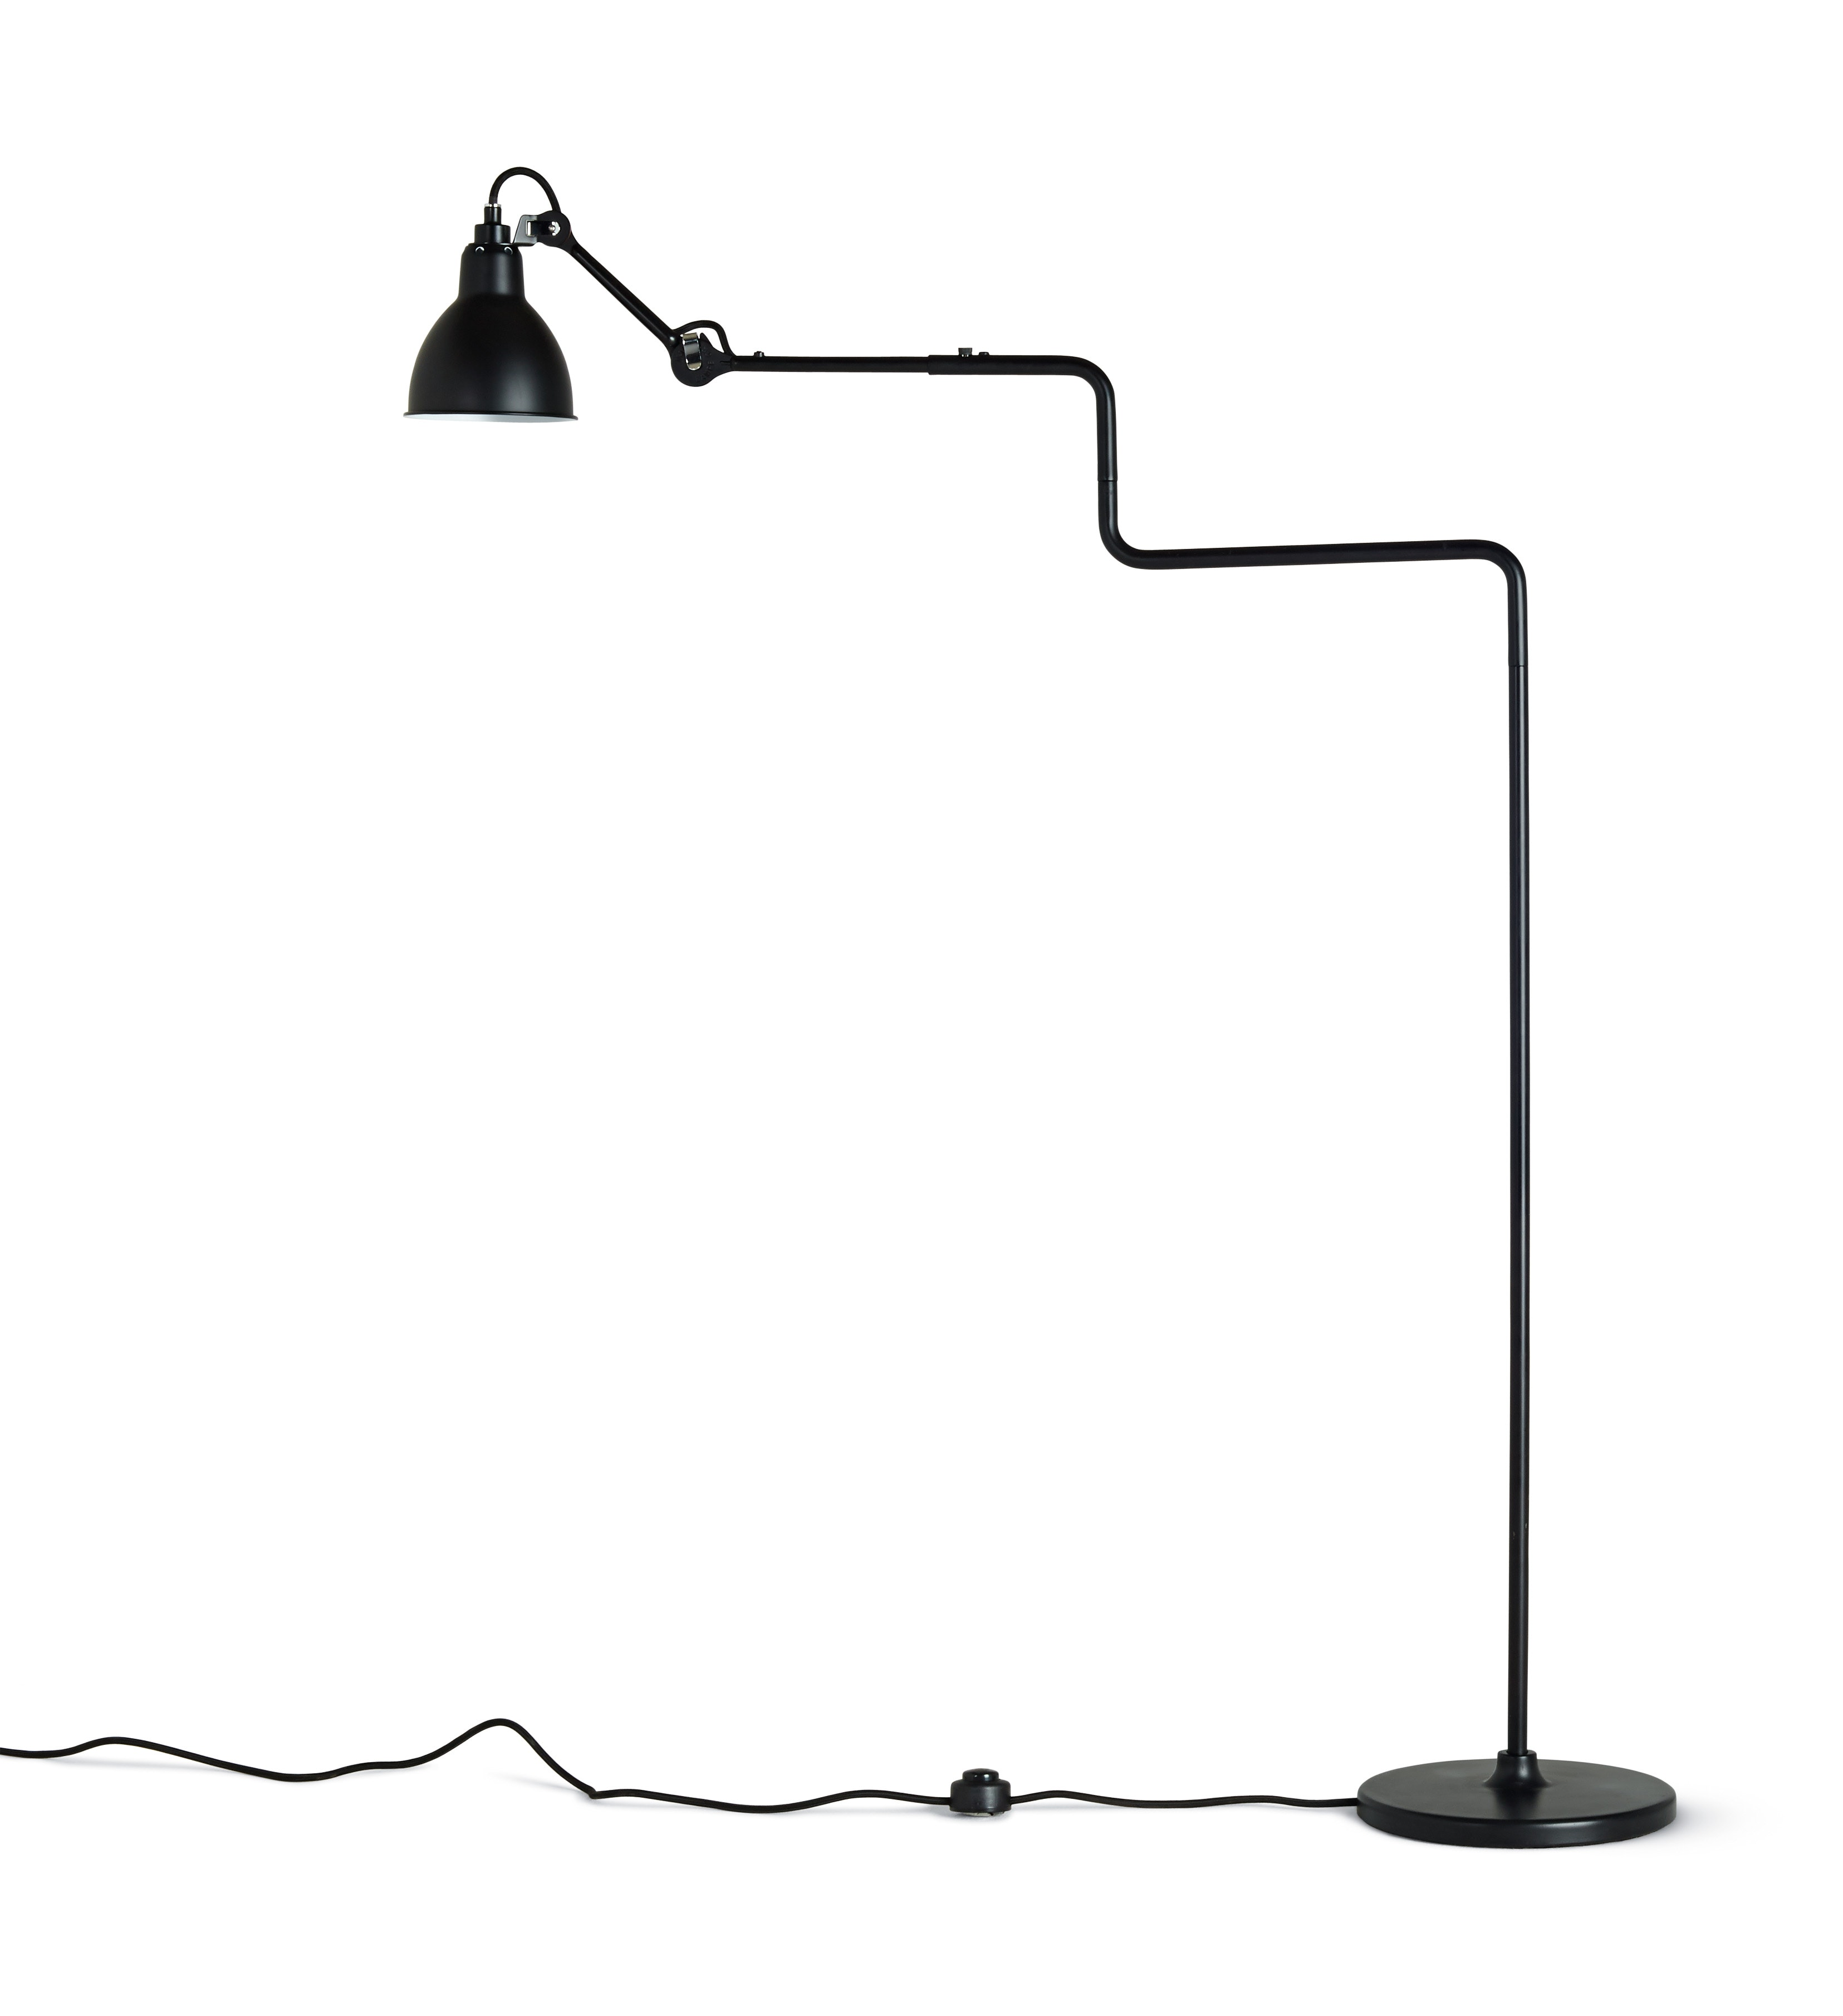 Designer Lampe Lampe Gras Model N411 Floor Lamp - Design Within Reach